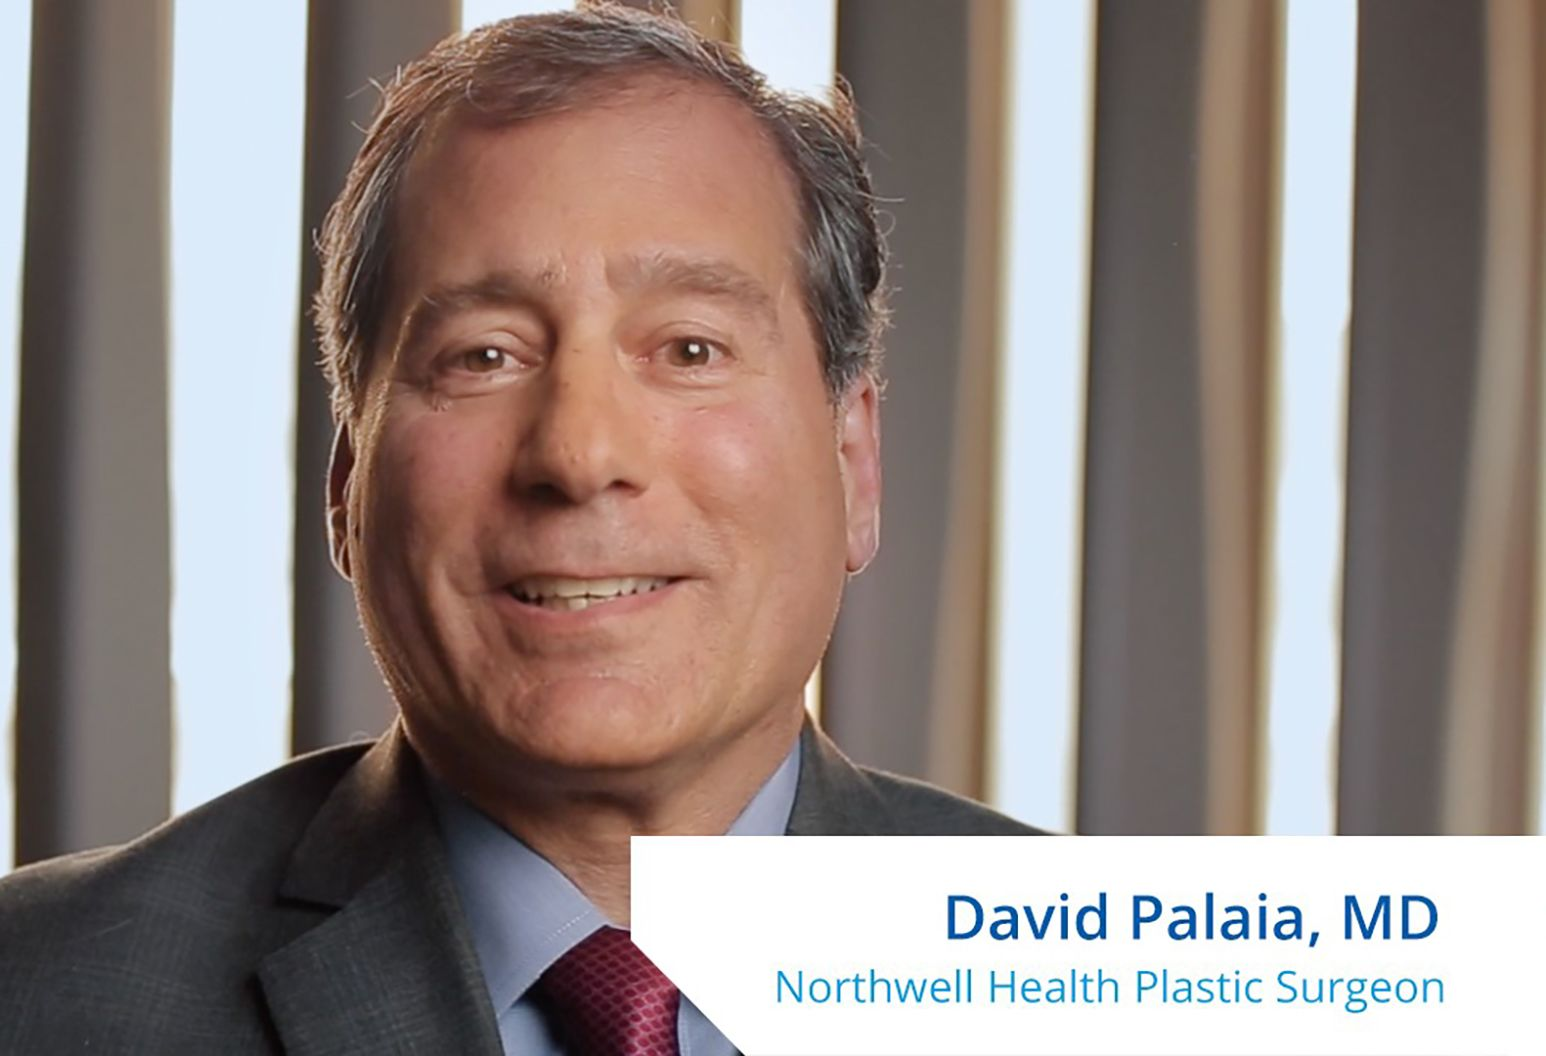 """A man with short black and gray hair speaks to the camera. On the lower right corner of the photo it reads, """"David Palaia, MD. Northwell Health Plastic Surgeon."""""""